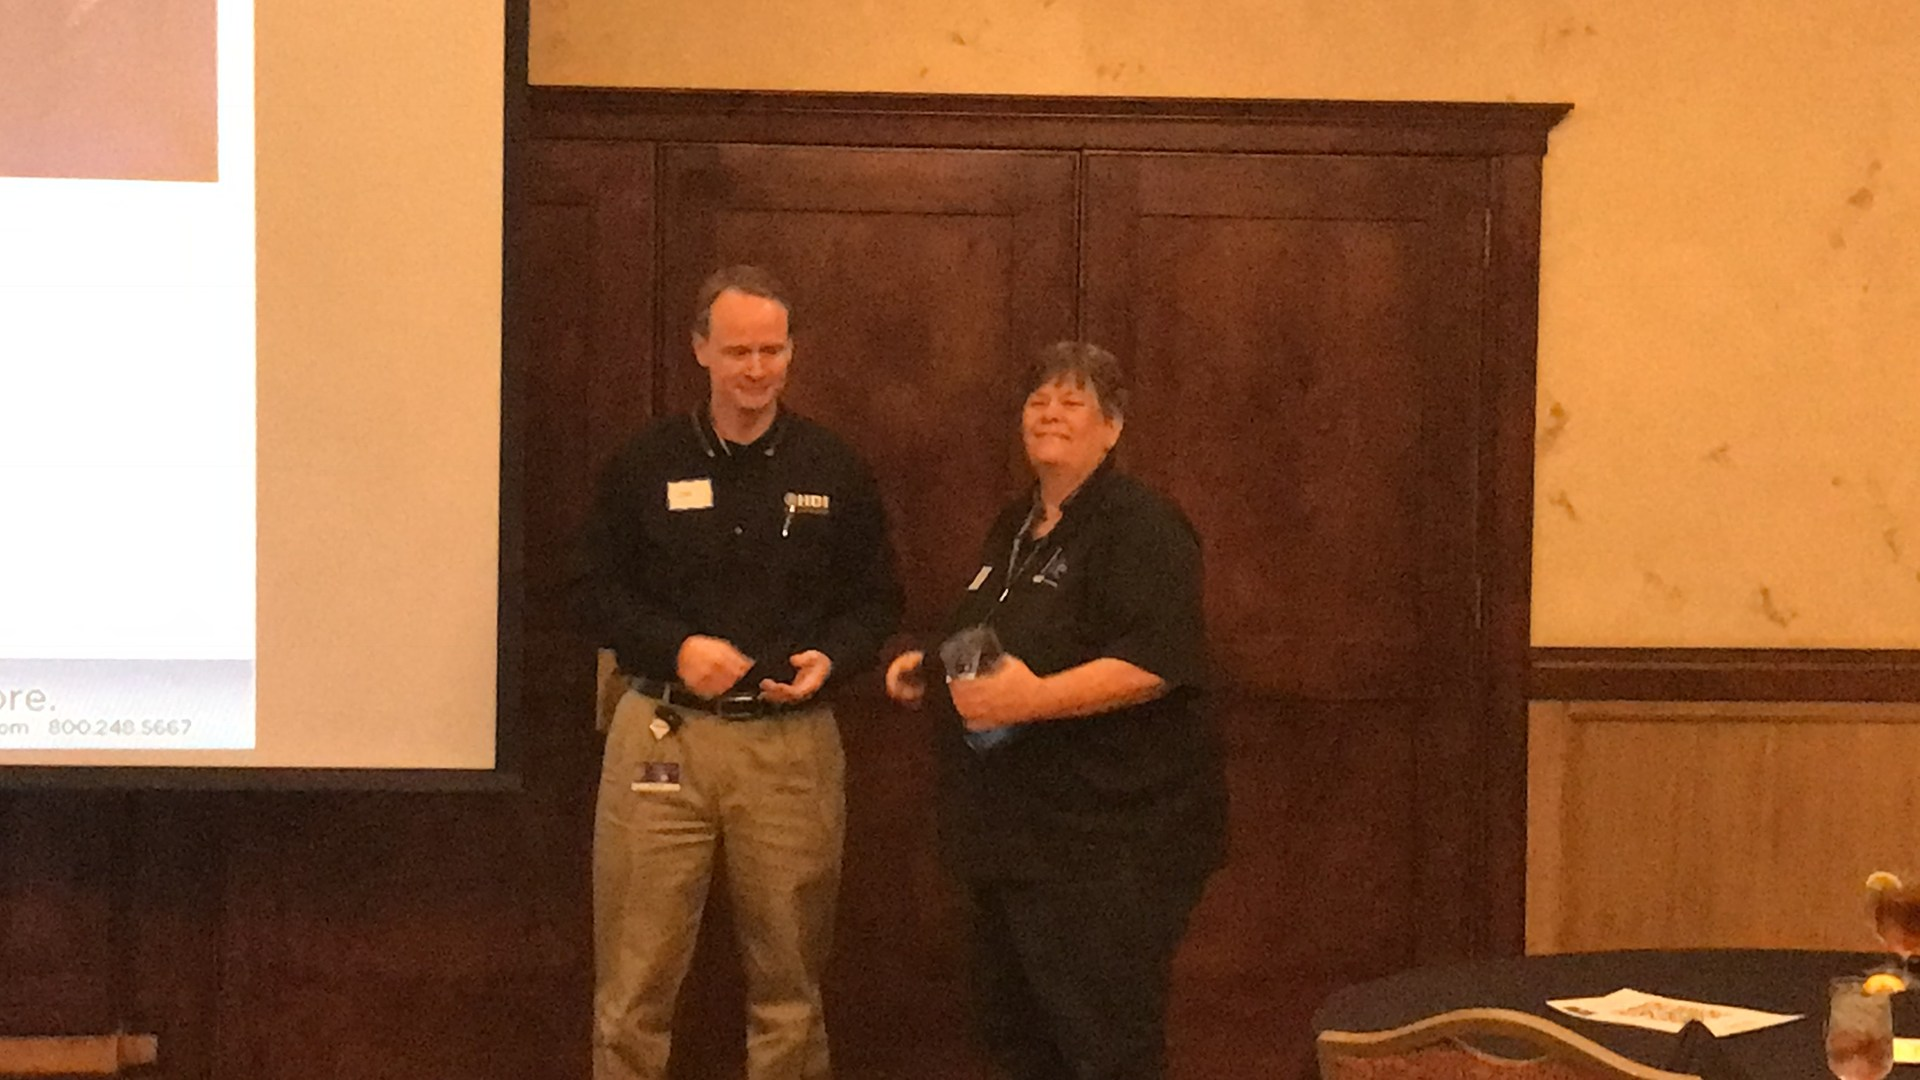 Armstrong HDI Desktop Support Technician of the Year